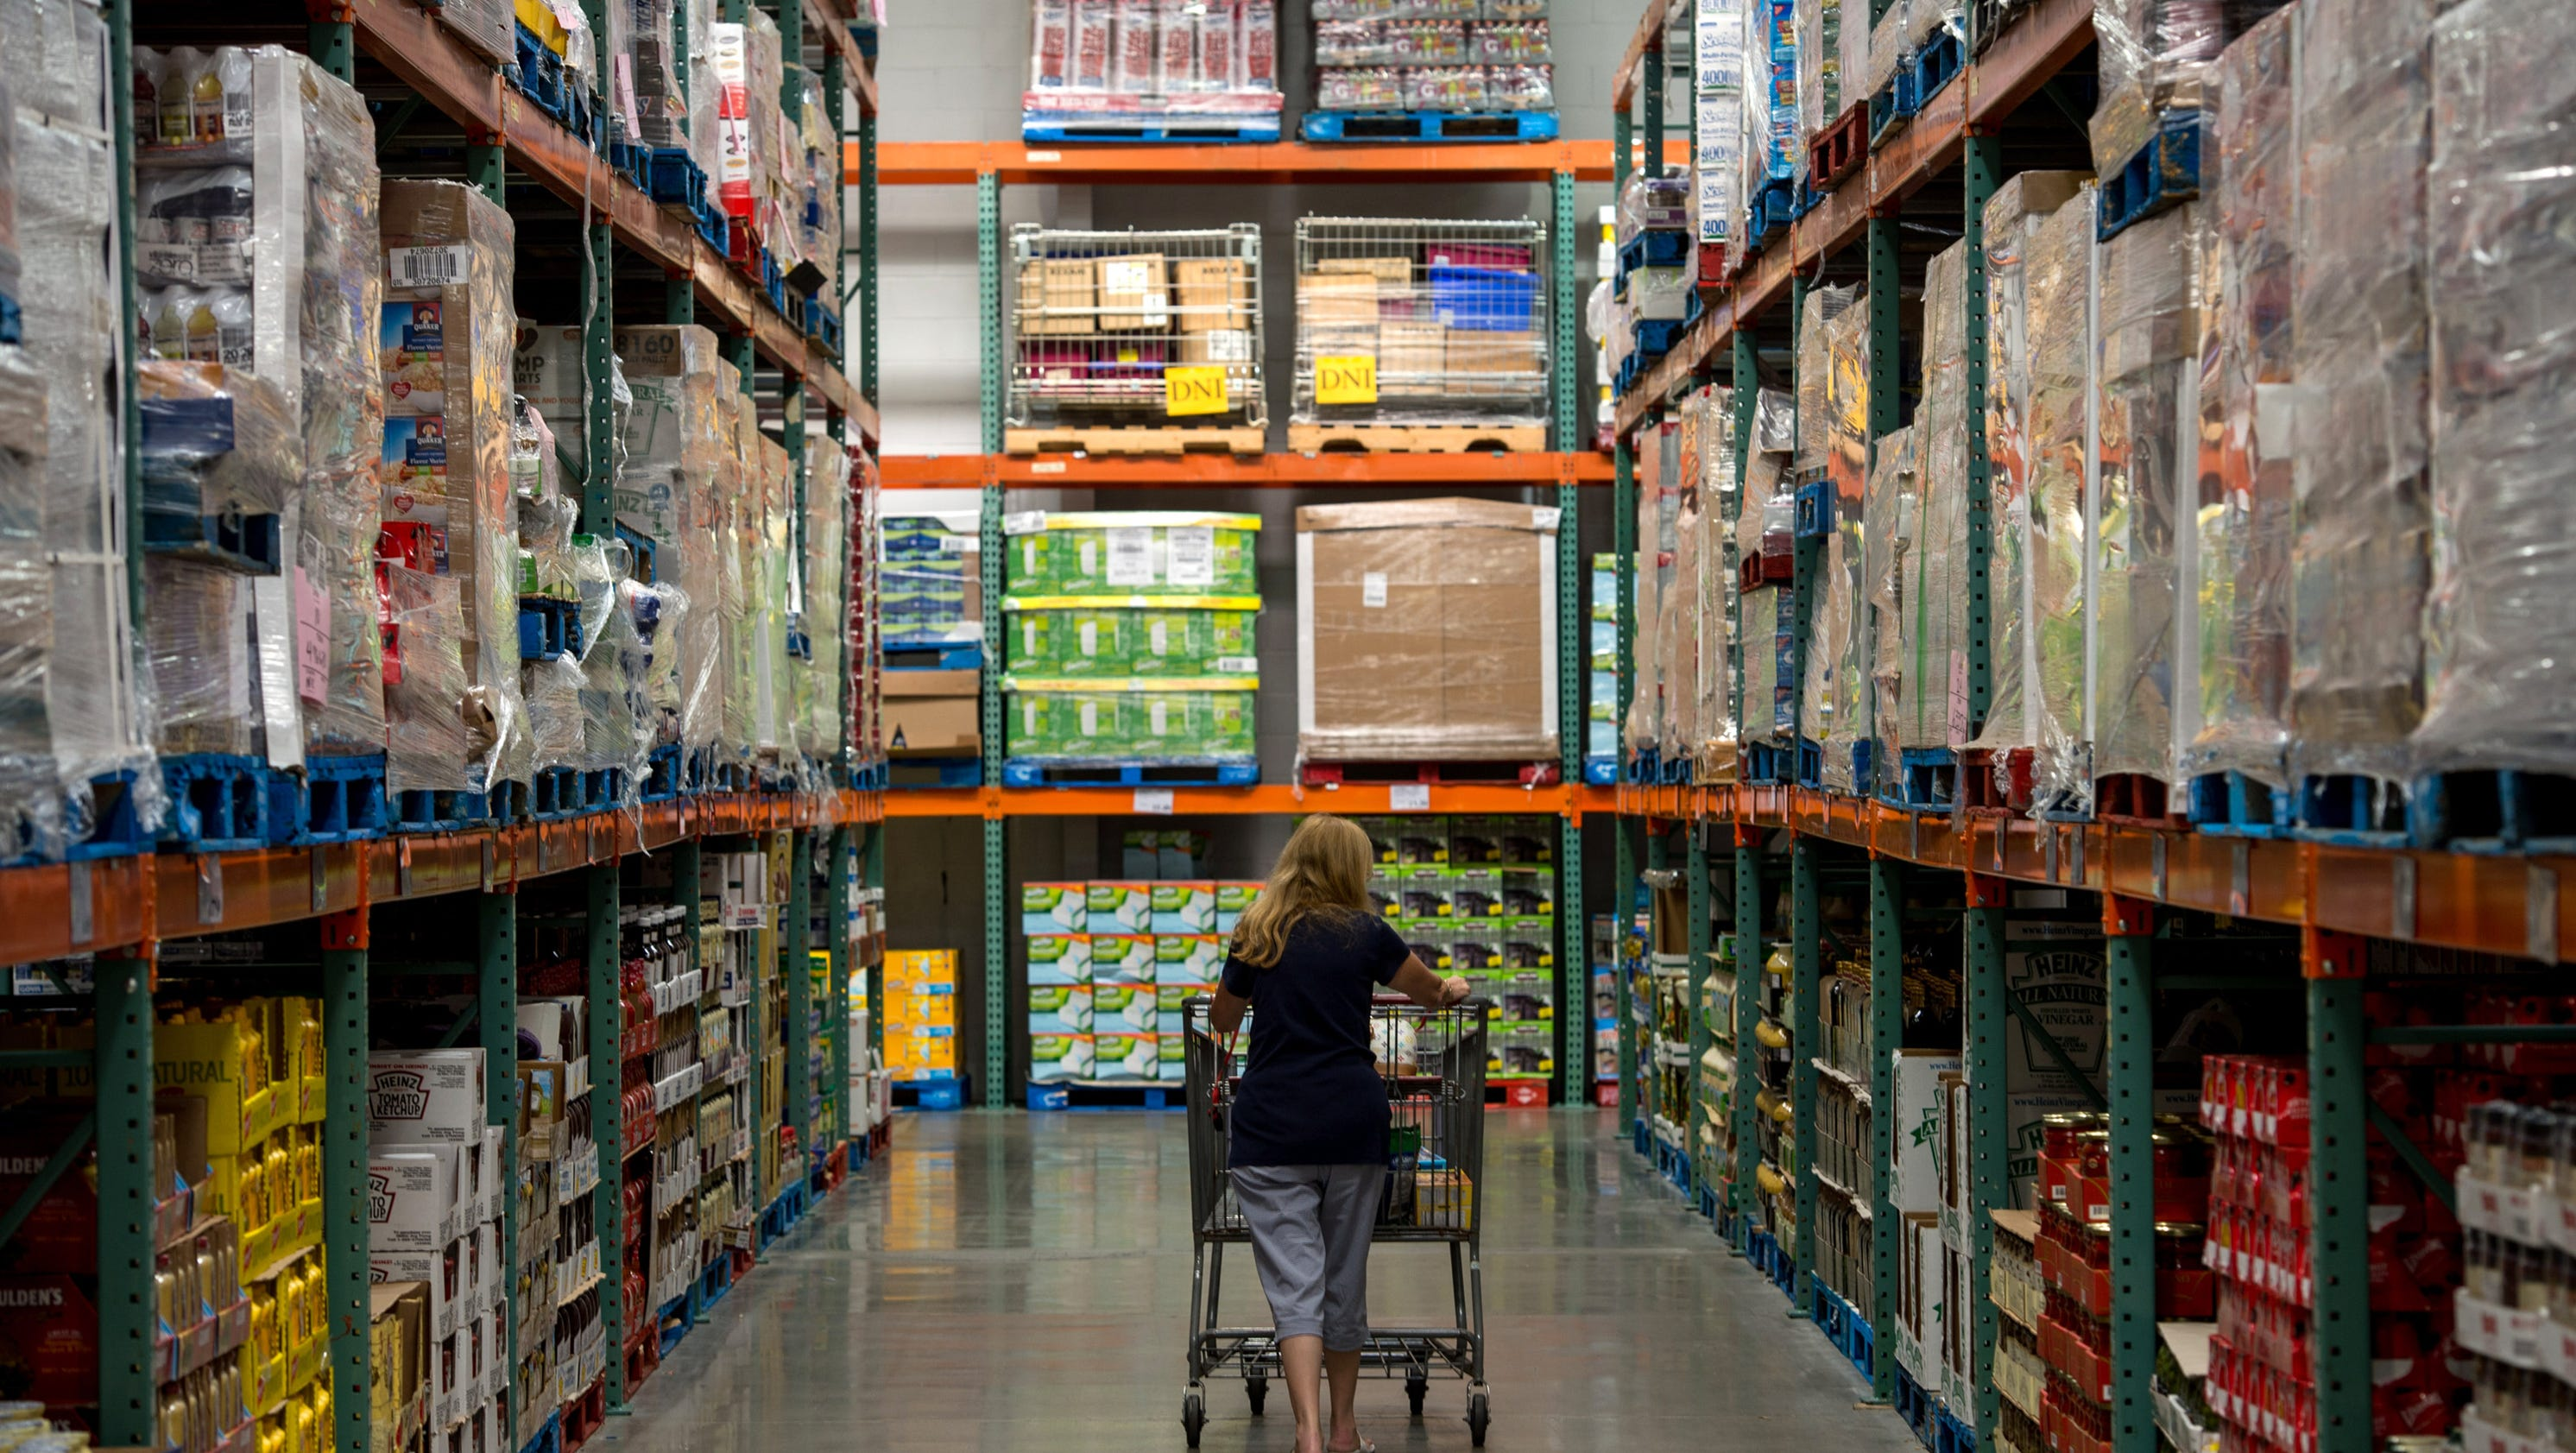 wal mart and costco Costco wholesale (nasdaq:cost) is a great company with a pricey stock i shop at costco my late father loved costco i have owned costco stock but at $243 per share, its opening price on.